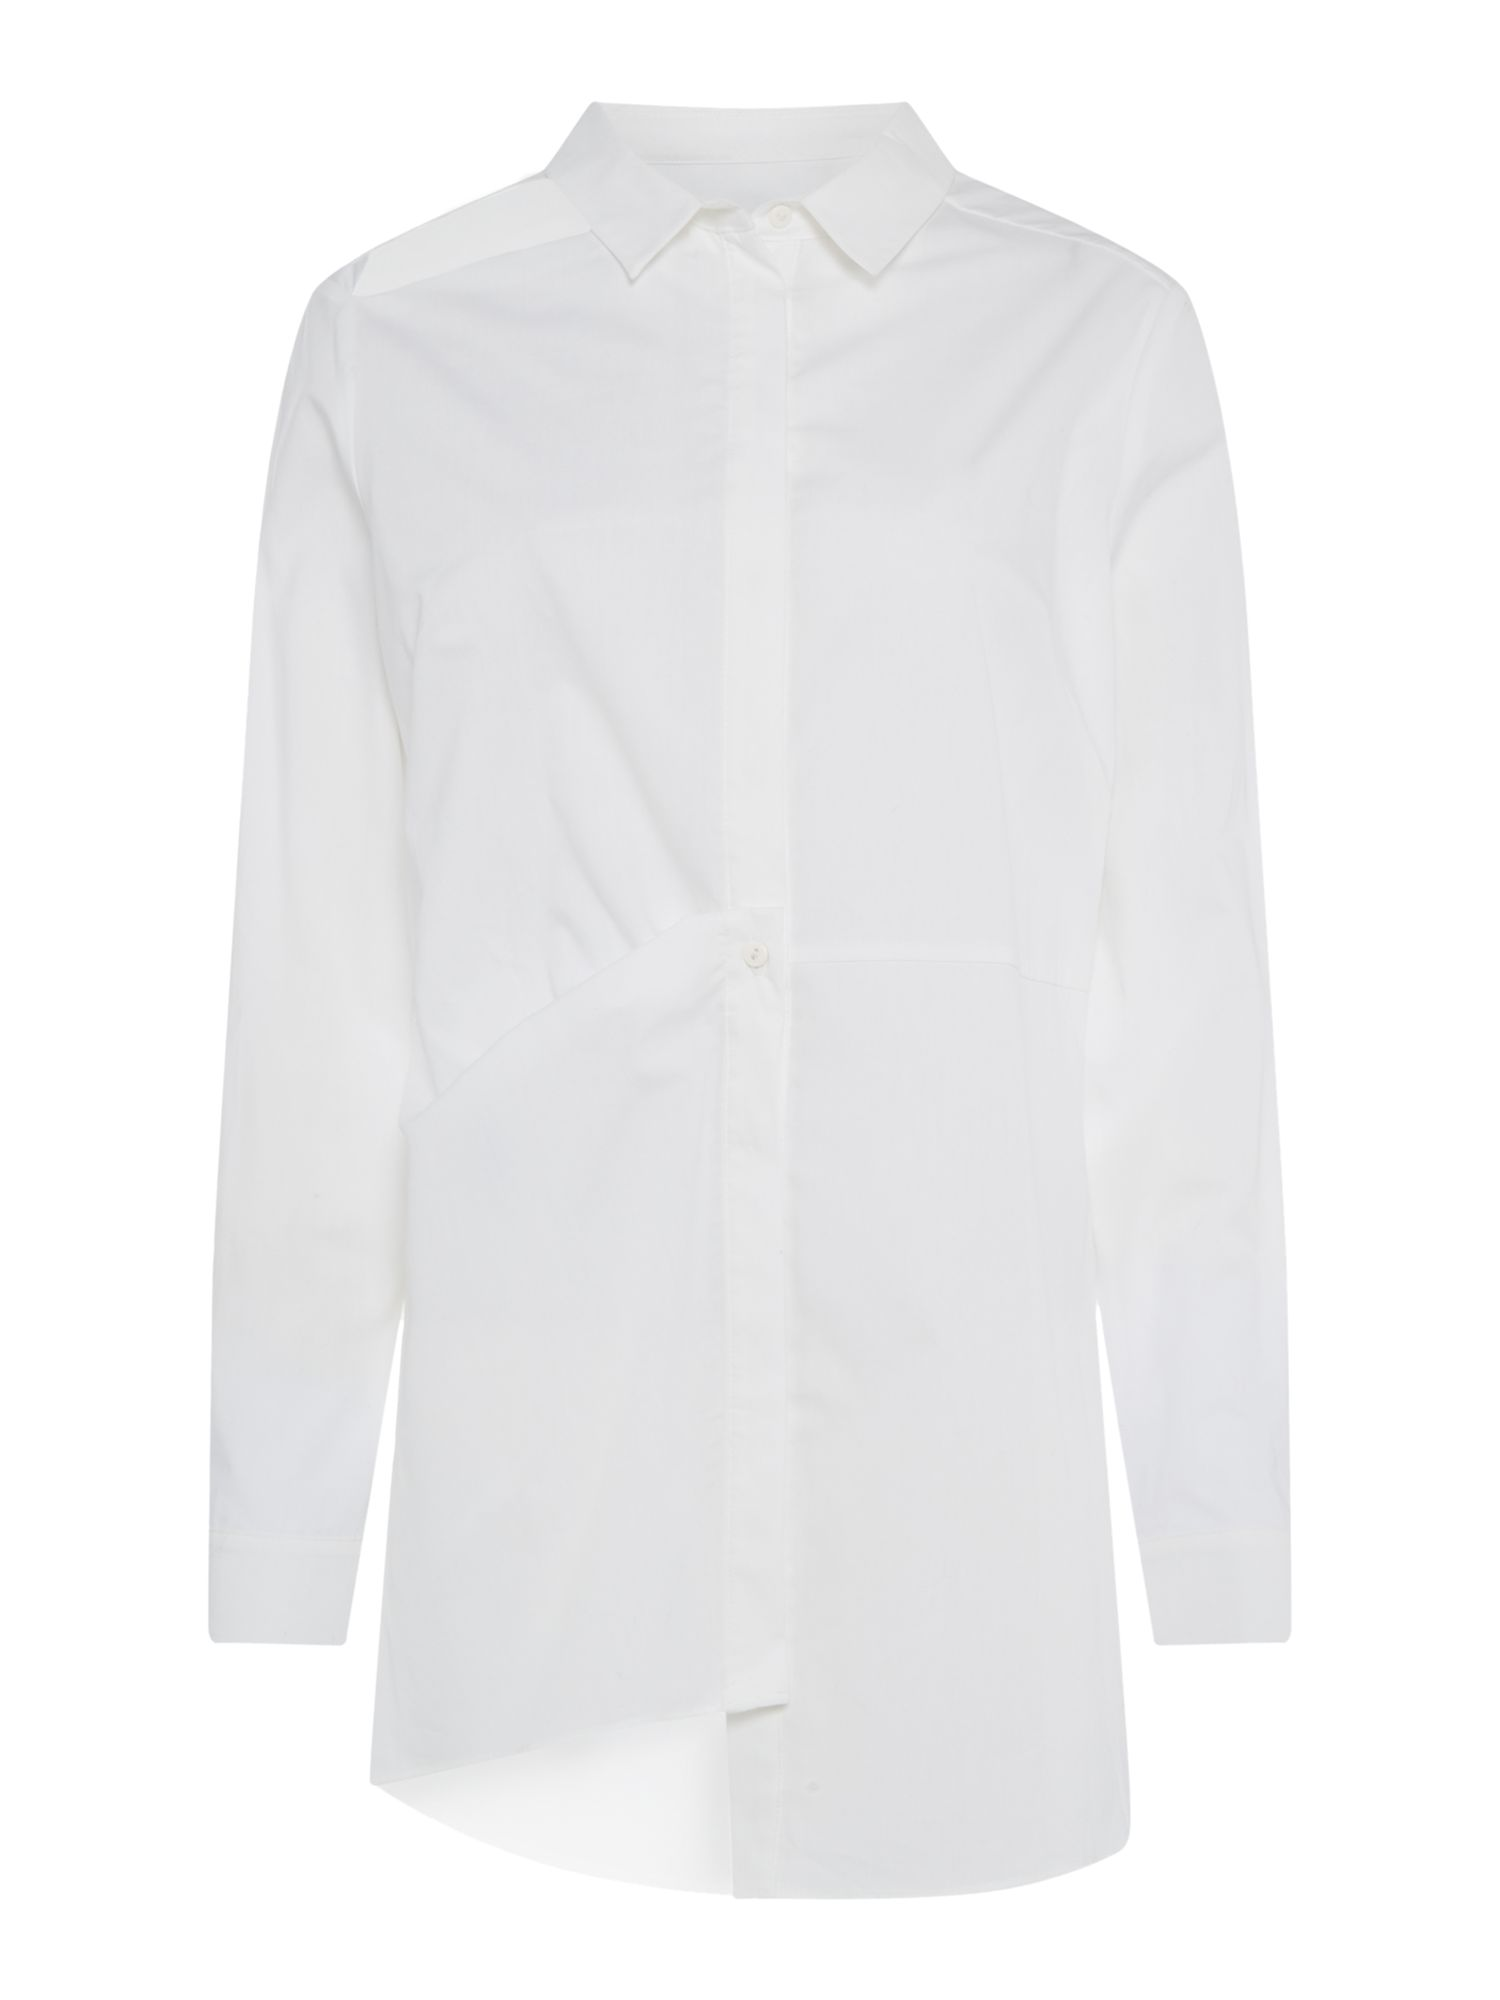 Label Lab White Step Hem Shirt, White